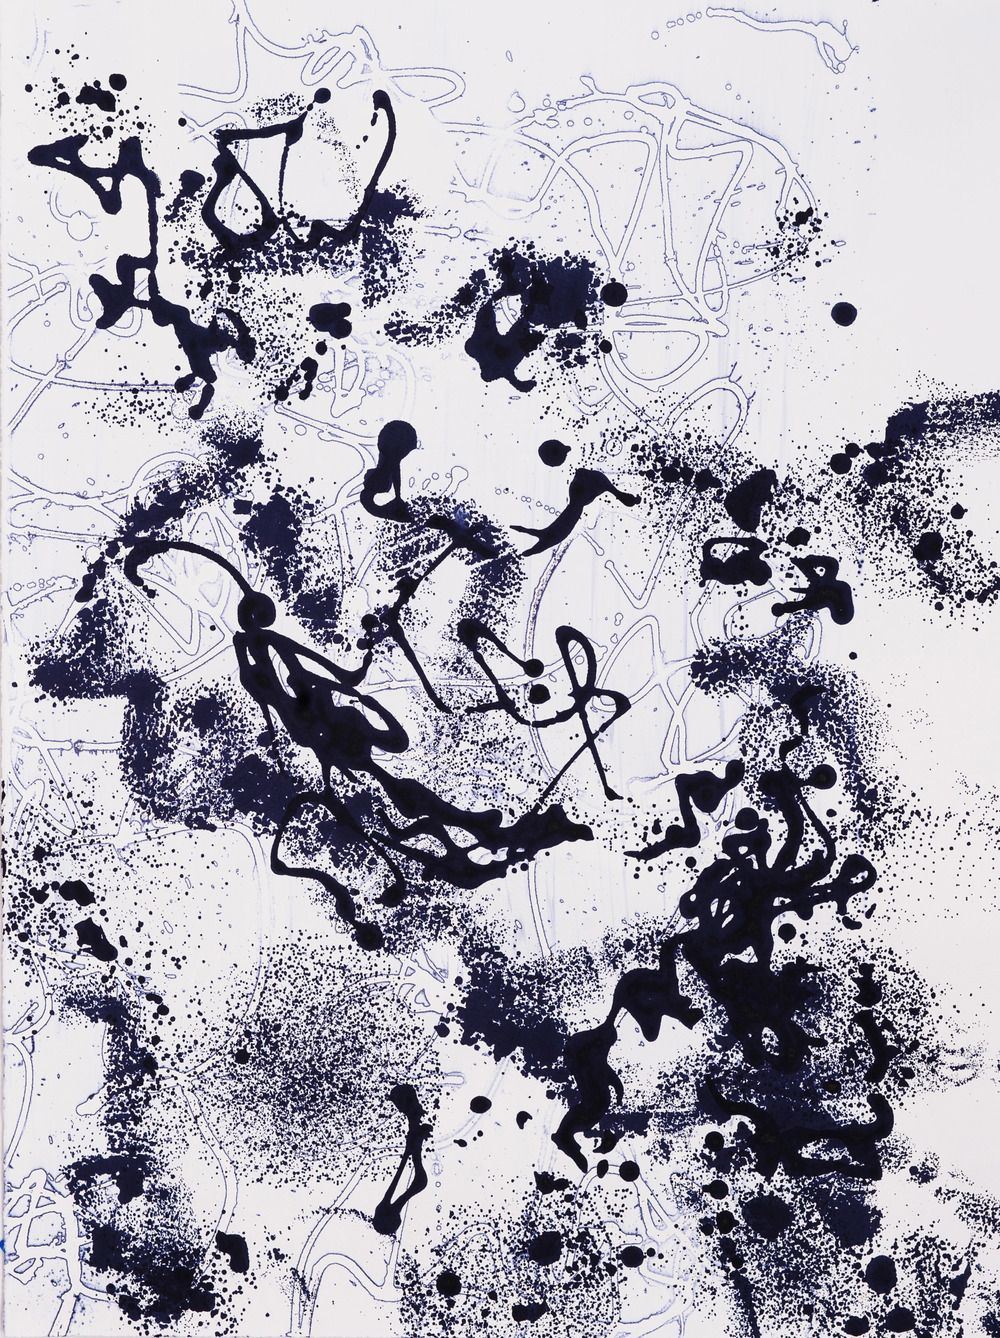 "Graffiti III, 22"" x 30"", Silkscreen painting on paper, 2015. SOLD"